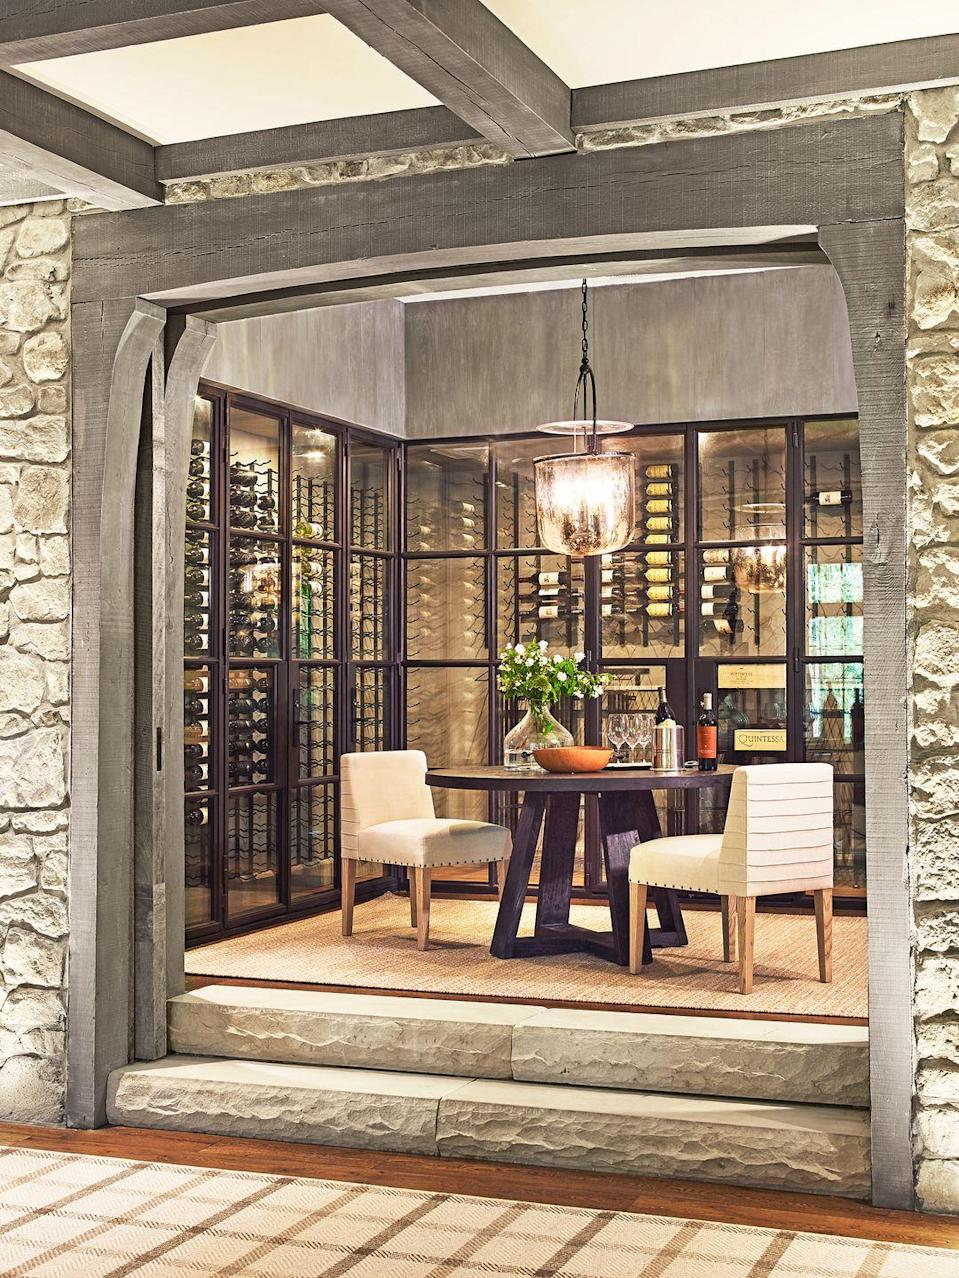 """<p>When designing a wine cellar you can also host guests in, it's best to keep wine behind glass in a climate-controlled zone and then use the rest of the useable space for a lounge area so you can keep both your wine and your guests comfy. Interior designer <a href=""""http://suzannekasler.com/"""" rel=""""nofollow noopener"""" target=""""_blank"""" data-ylk=""""slk:Suzanne Kasler"""" class=""""link rapid-noclick-resp"""">Suzanne Kasler</a> designed this wine room for<a href=""""https://www.housebeautiful.com/design-inspiration/a33538767/suzanne-kasler-tennessee-blackberry-farm/"""" rel=""""nofollow noopener"""" target=""""_blank"""" data-ylk=""""slk:clients who love hosting"""" class=""""link rapid-noclick-resp""""> clients who love hosting</a> (read: wining and dining) their large extended family. </p>"""